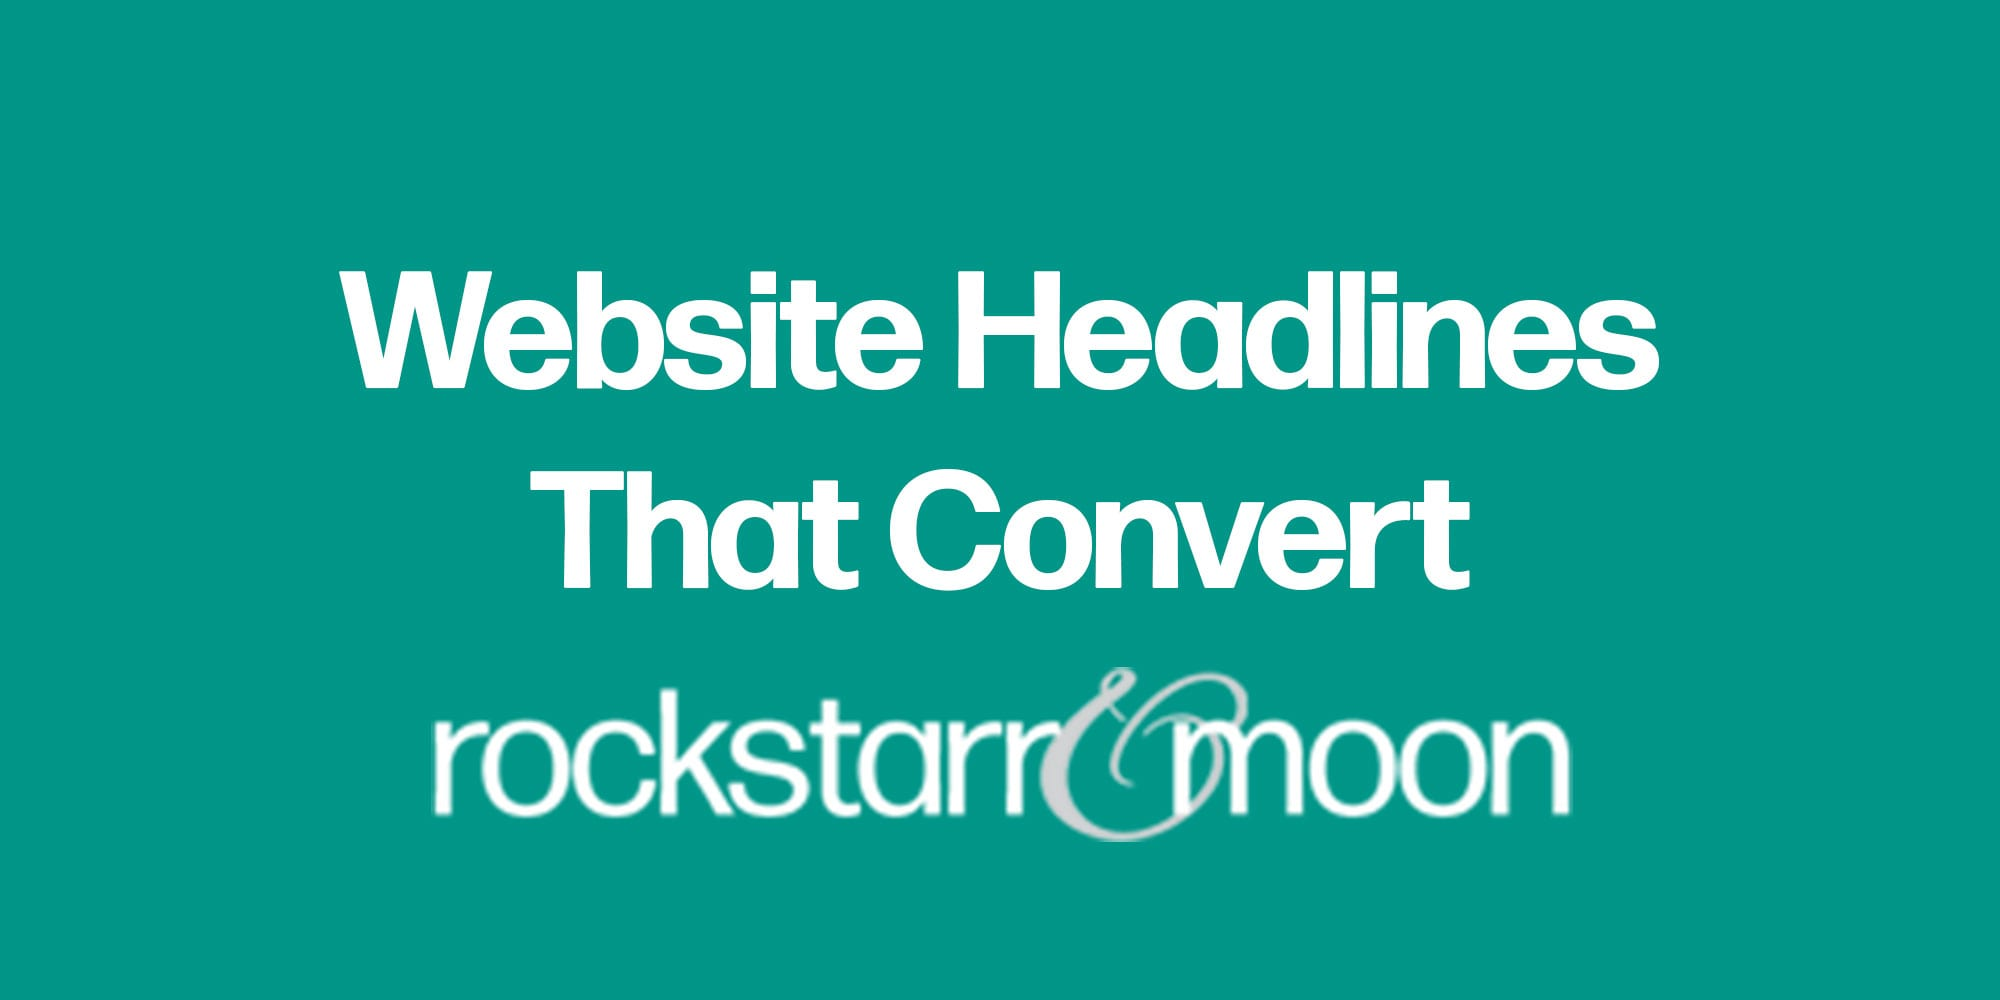 How to Write Attention-Grabbing Website Headlines That Convert